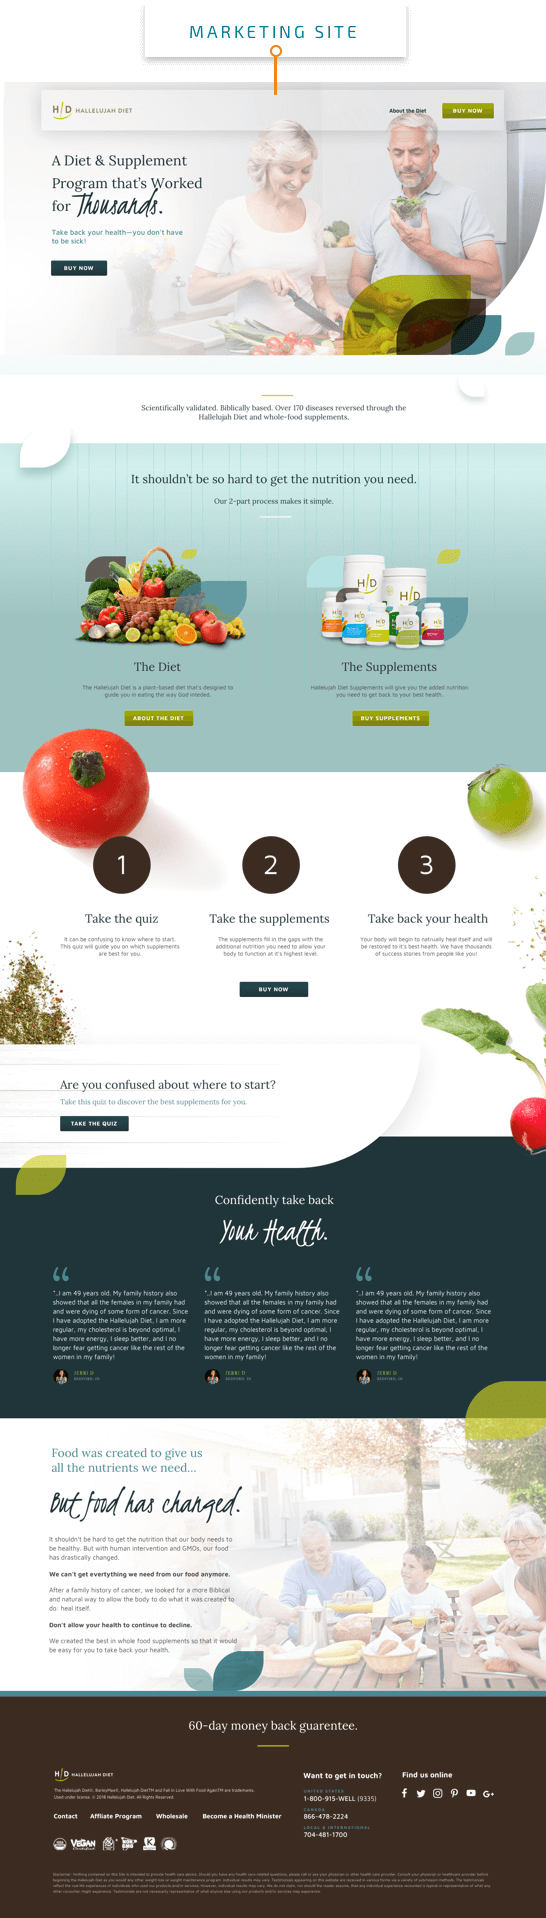 hallelujah diet marketing website preview